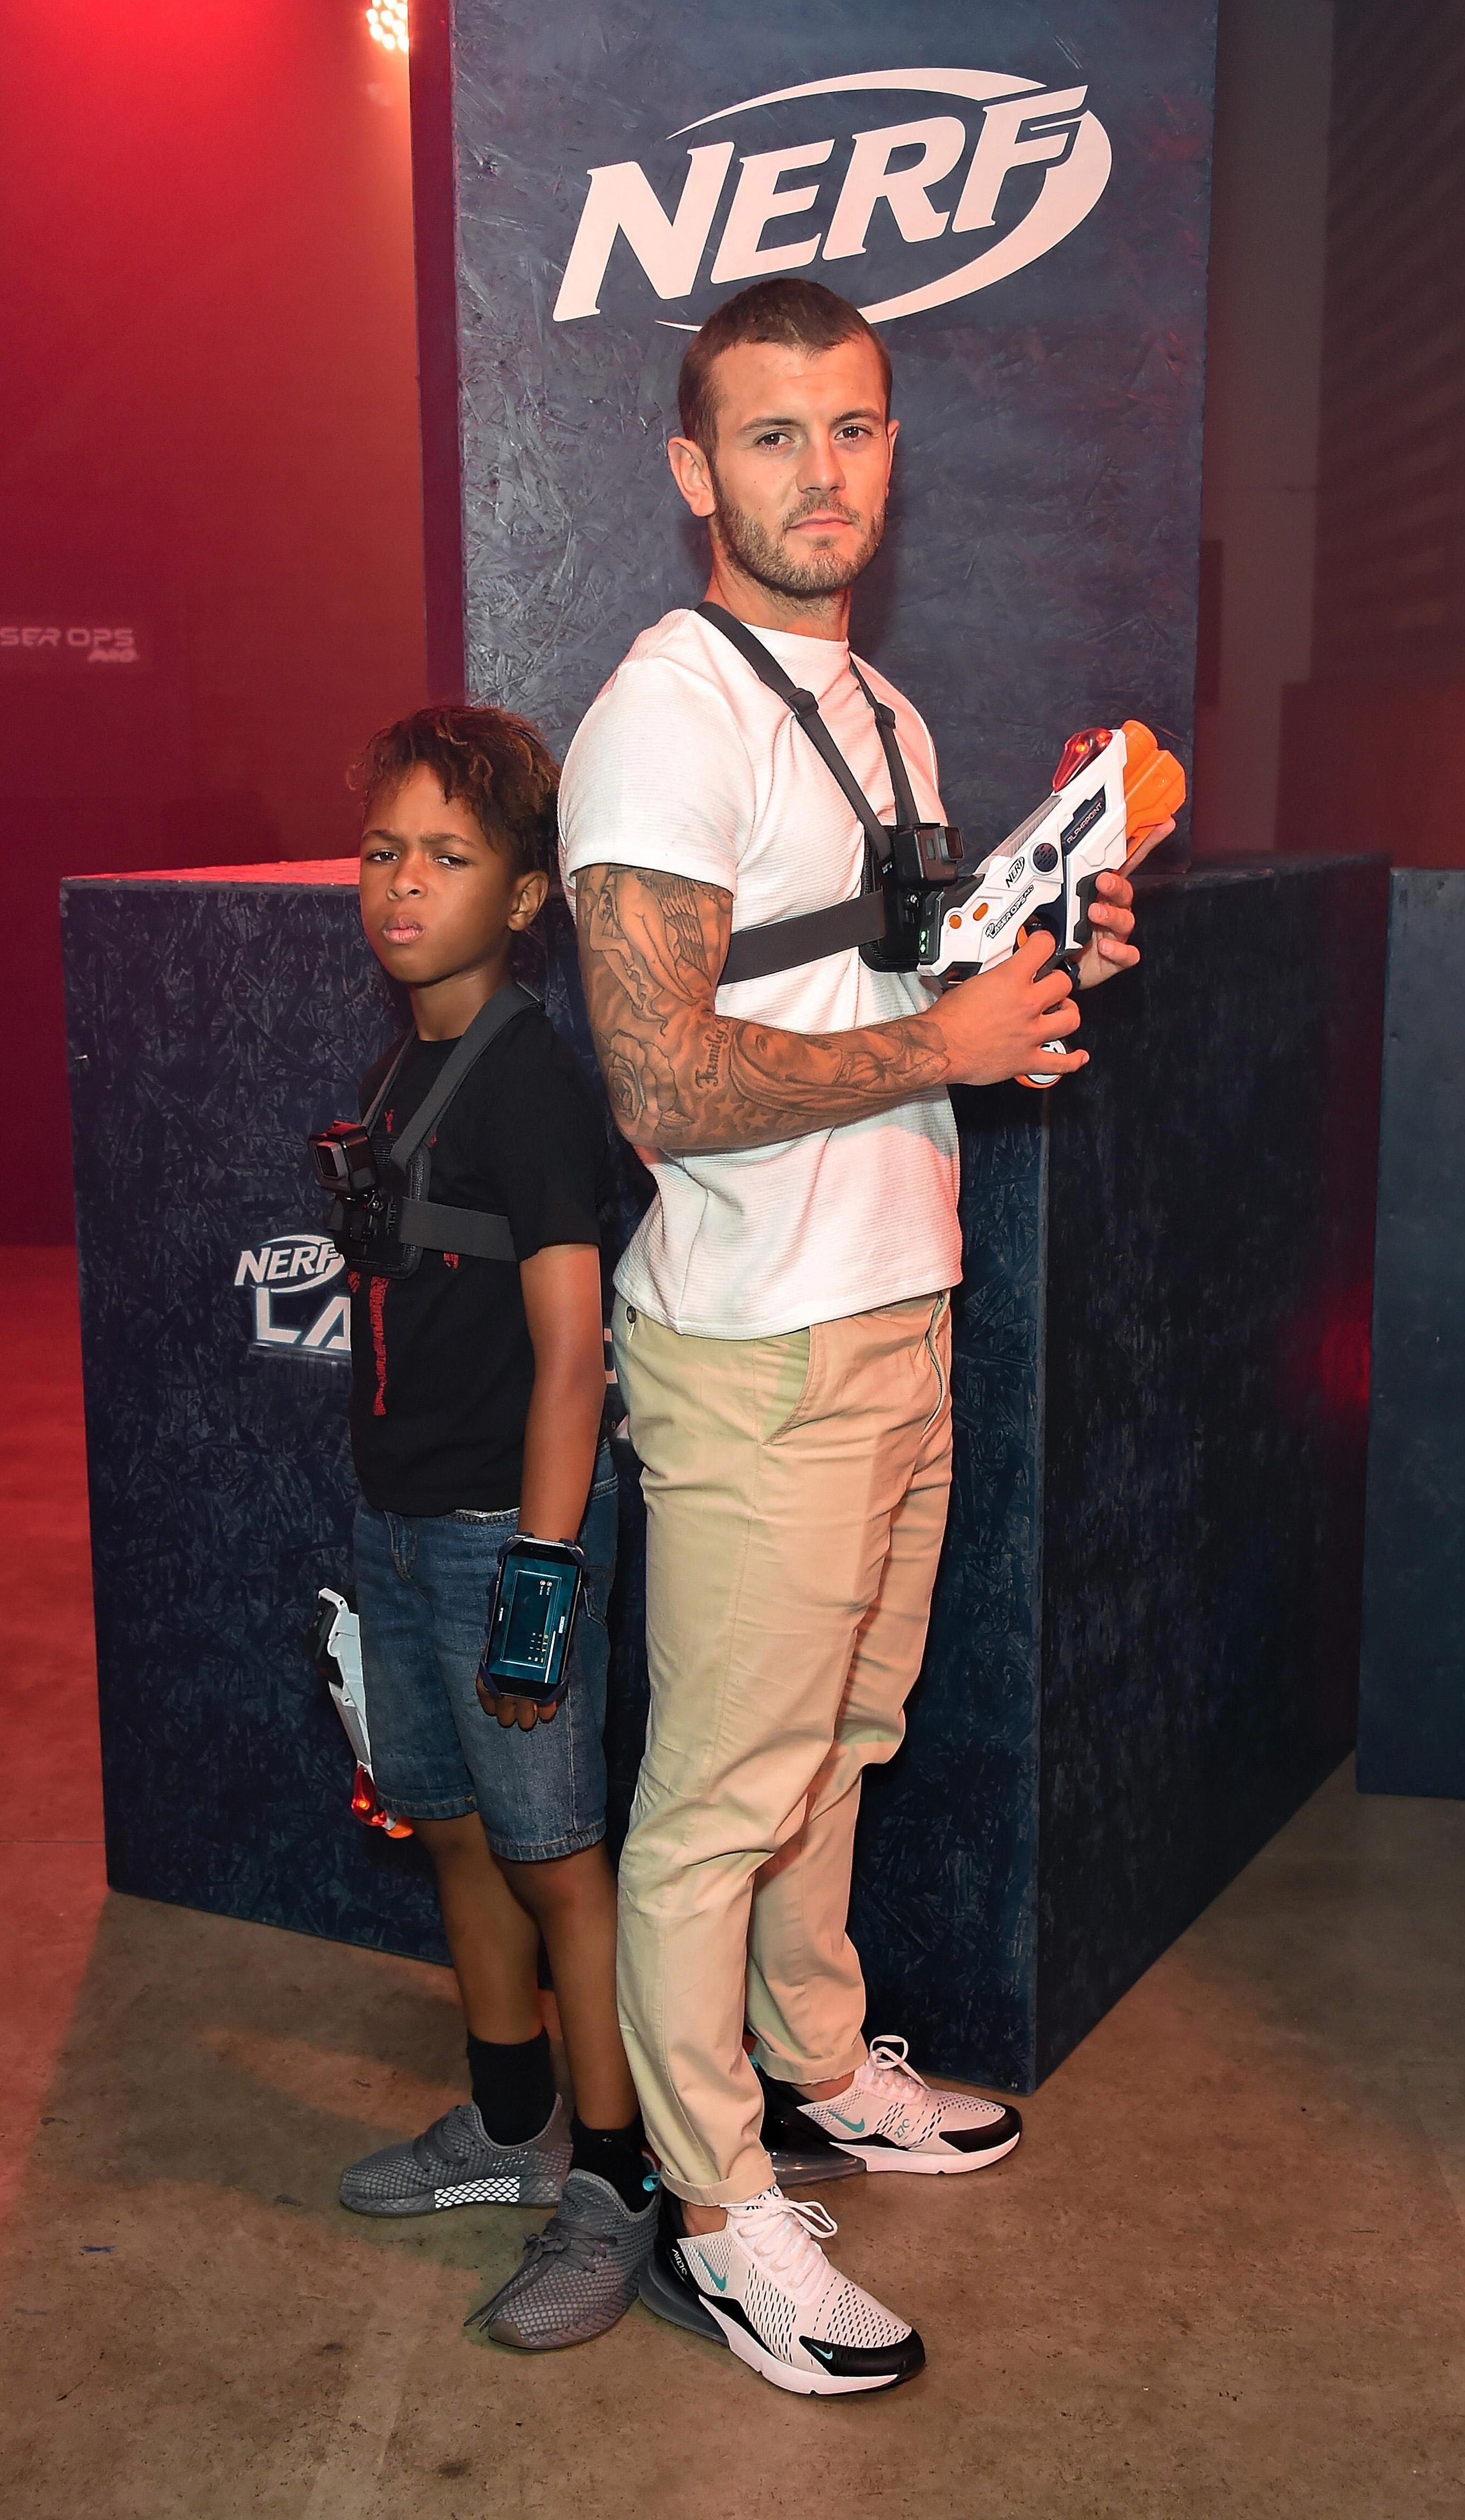 New West Ham midfielder Jack Wilshere takes on Tekkerz Kid at laser shooting and is clearly fired up for the new season